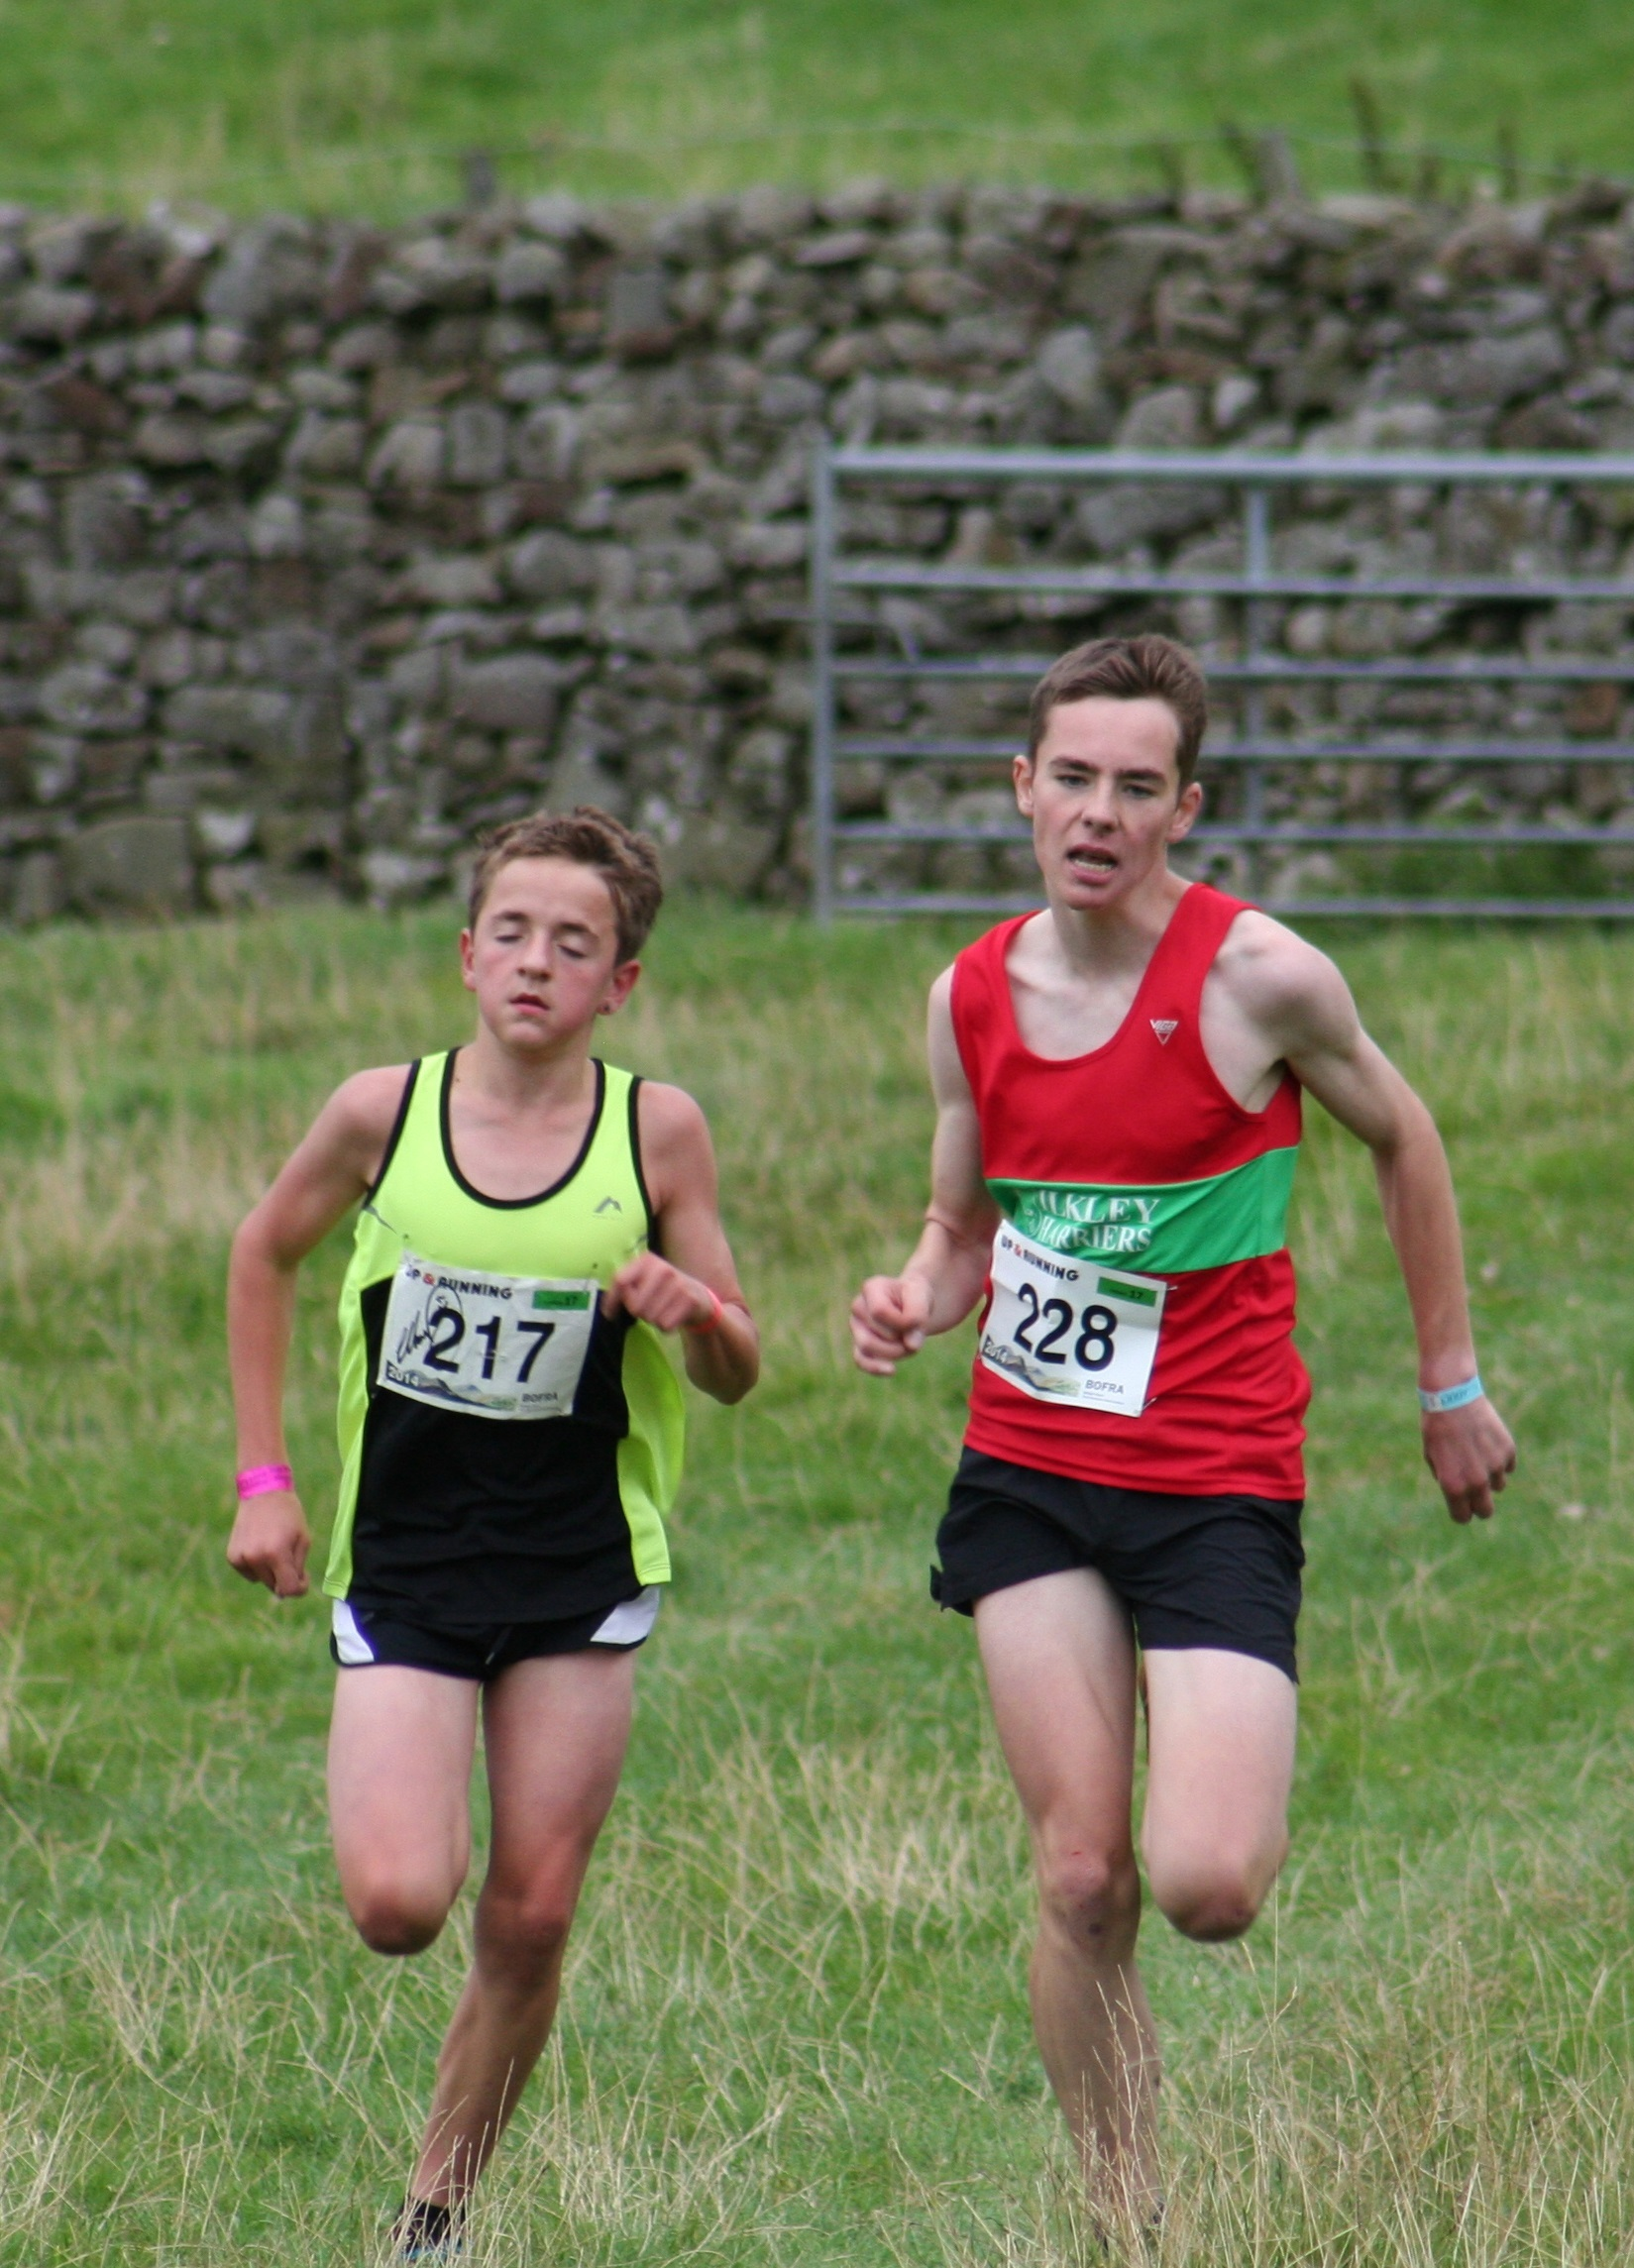 Wharfedale's Jack Smith wins at Reeth